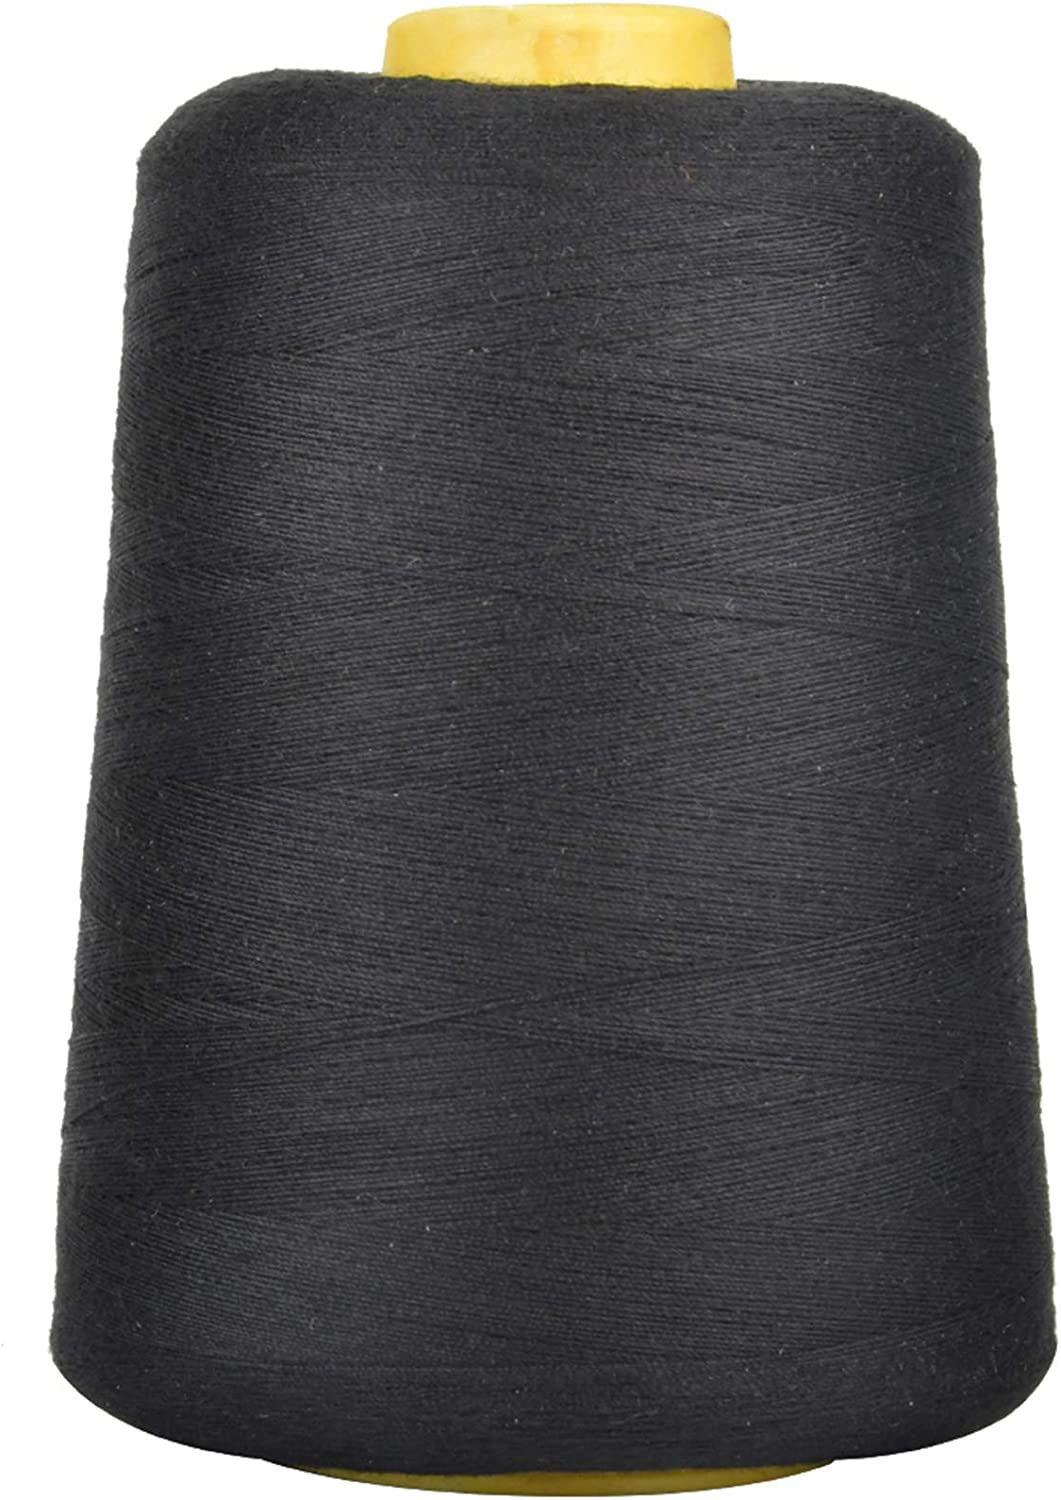 wholesale Sewing Thread 100% Polyester Spools All-Pur 6000 Supplies Cheap SALE Start Yards